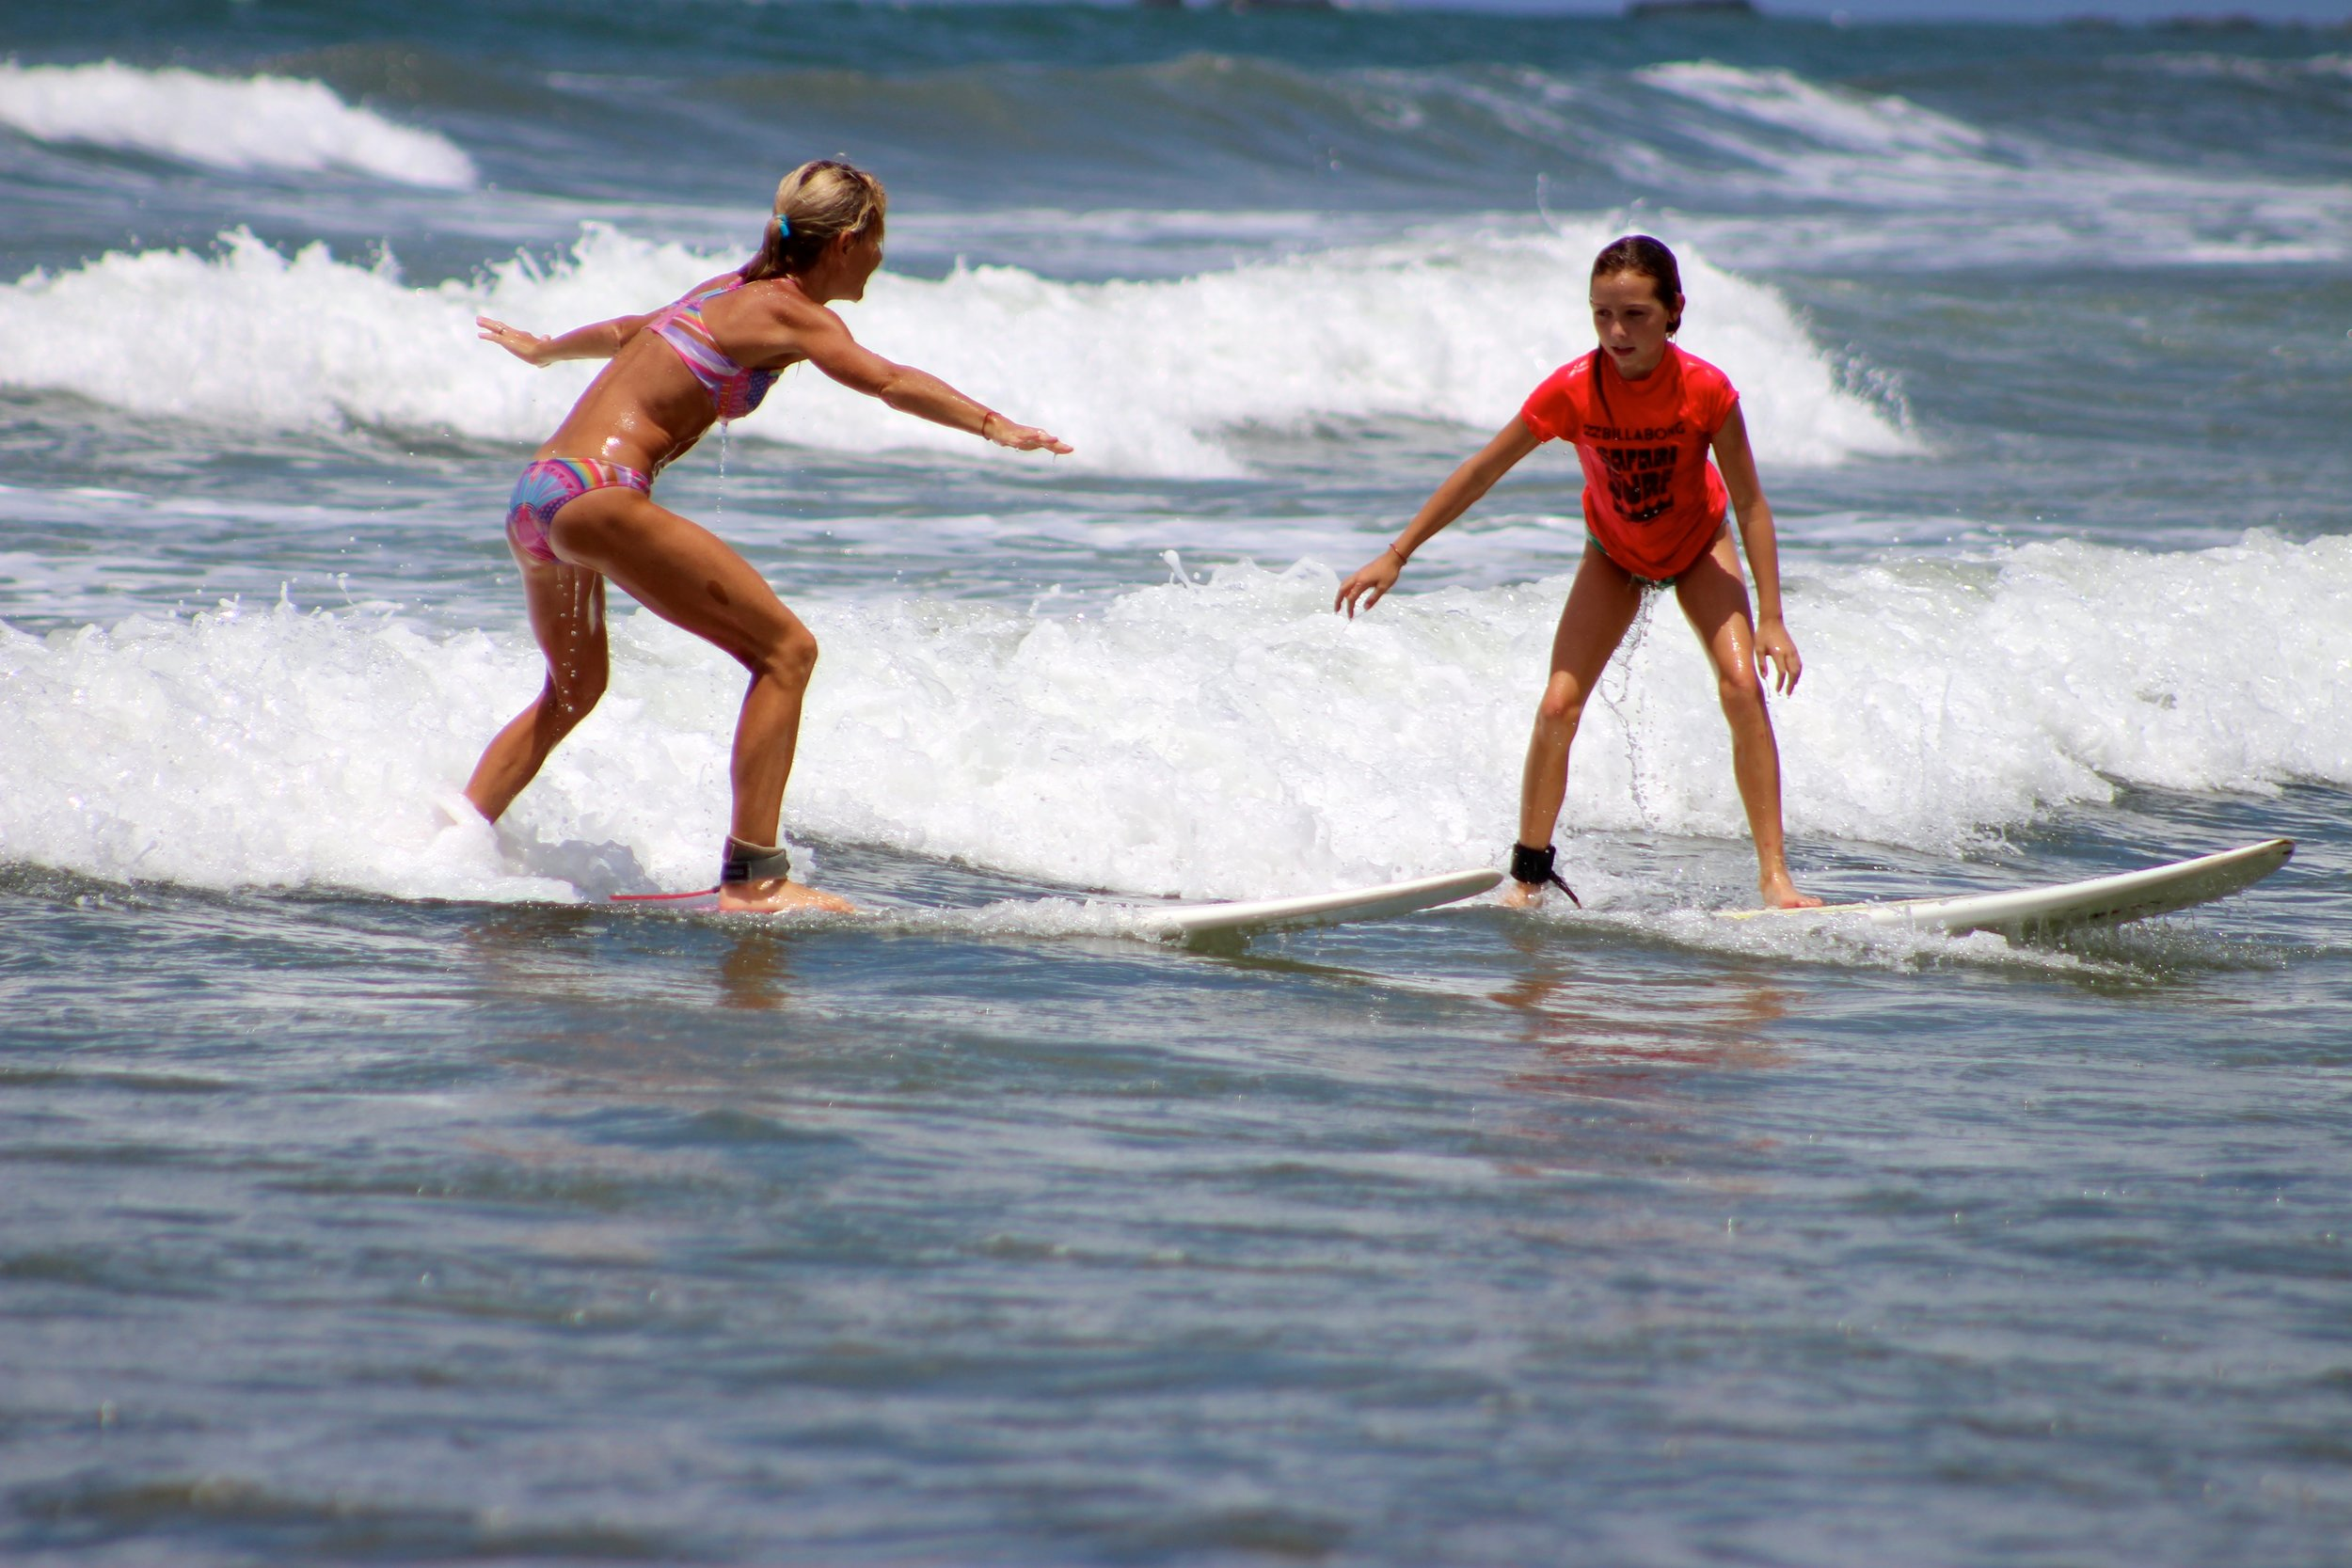 Surfing the amazing and endless waves on Playa Guiones in Nosara, Costa Rica.